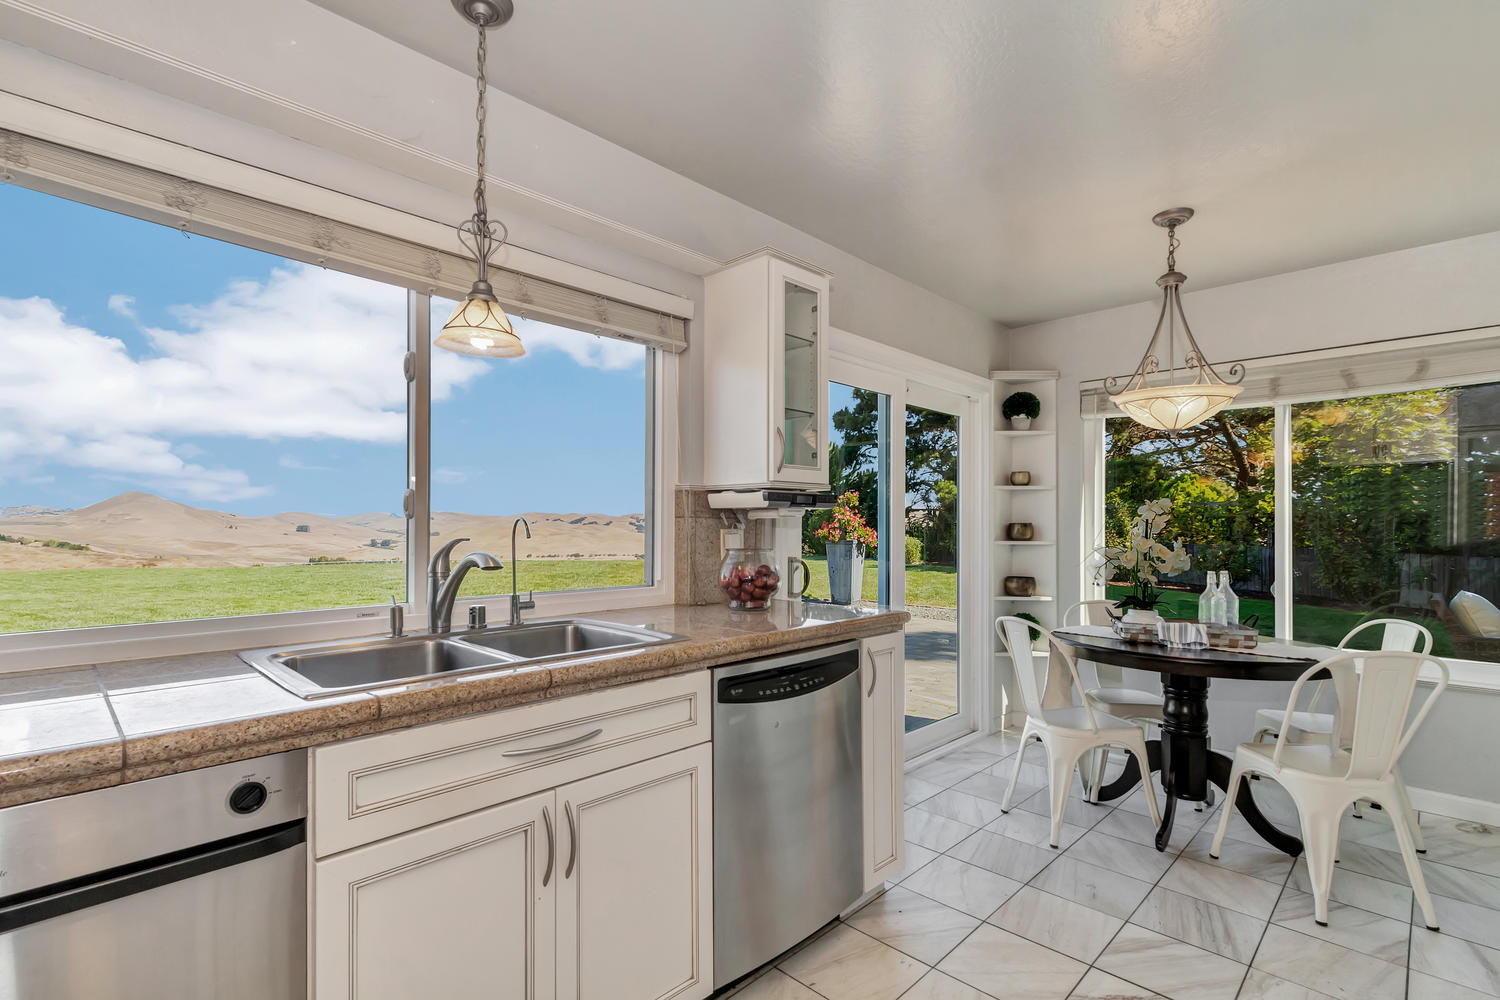 Sweeping scenic views and incredible natural light fill the beautifully remodeled kitchen!